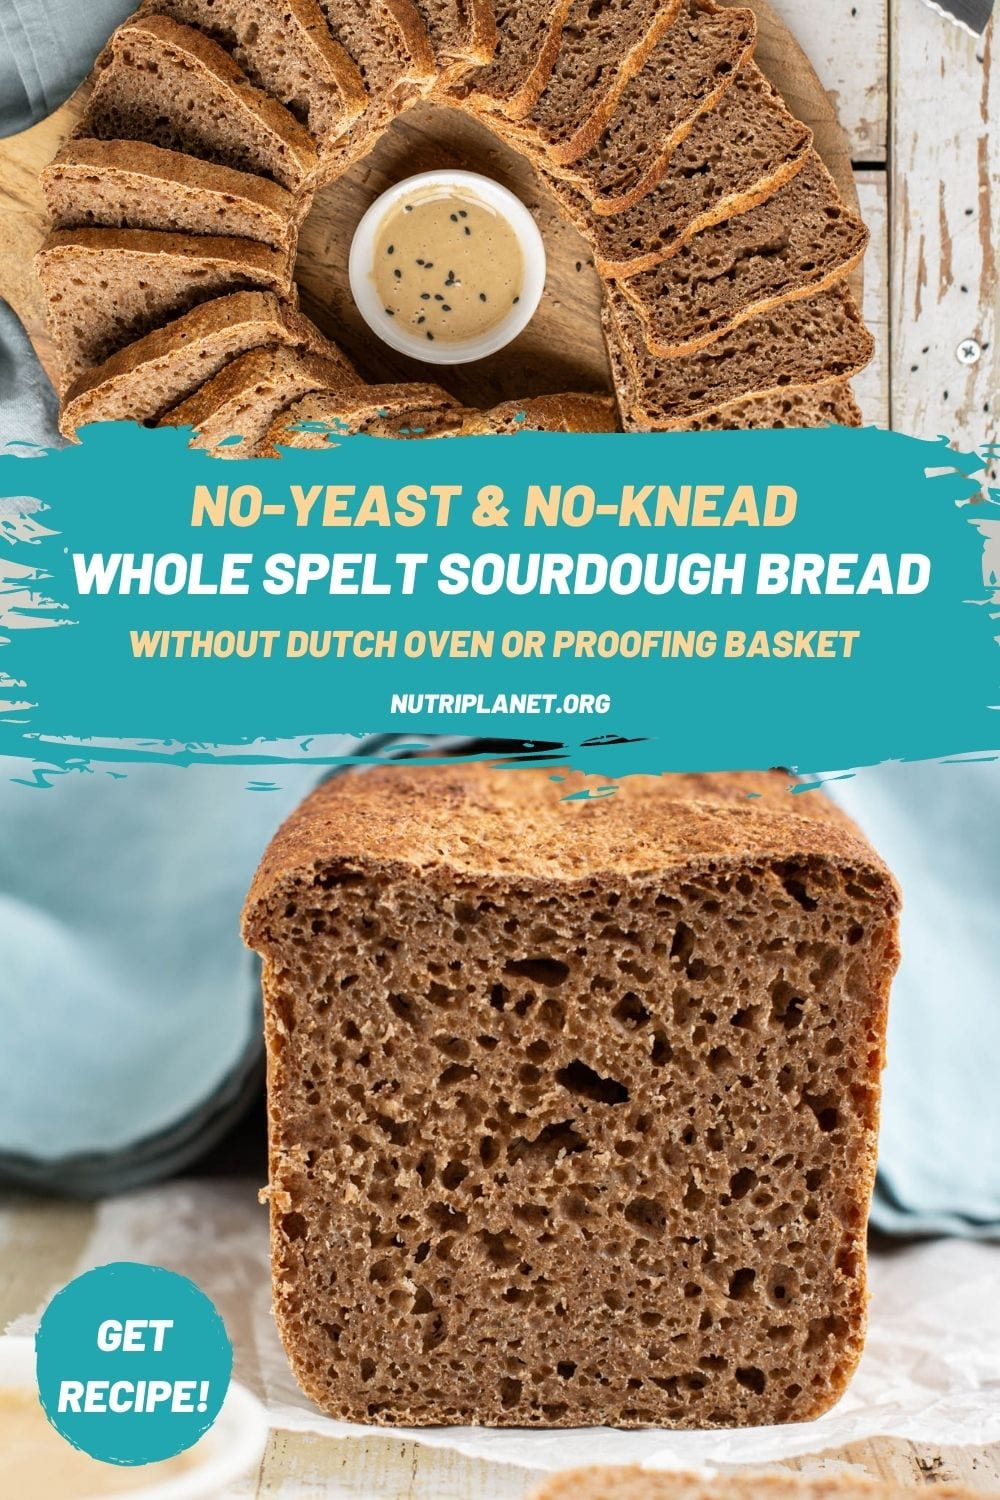 Learn how to make no-knead whole grain spelt sourdough bread with simple equipment in only 8 hours.